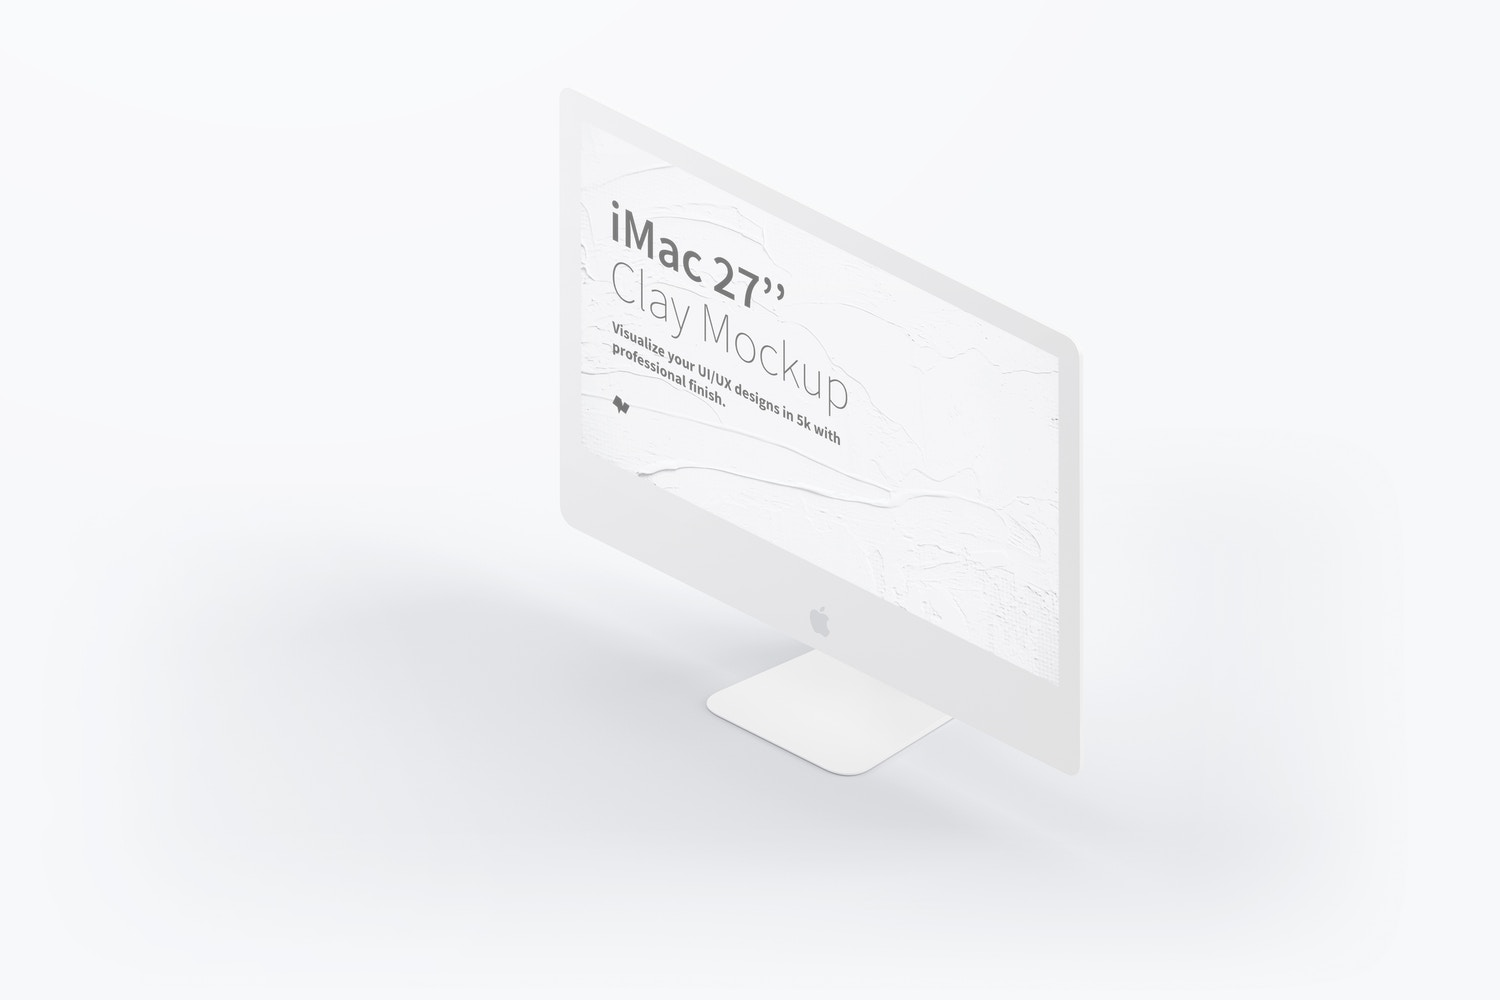 "Clay iMac 27"" Mockup, Isometric Right View (1) by Original Mockups on Original Mockups"